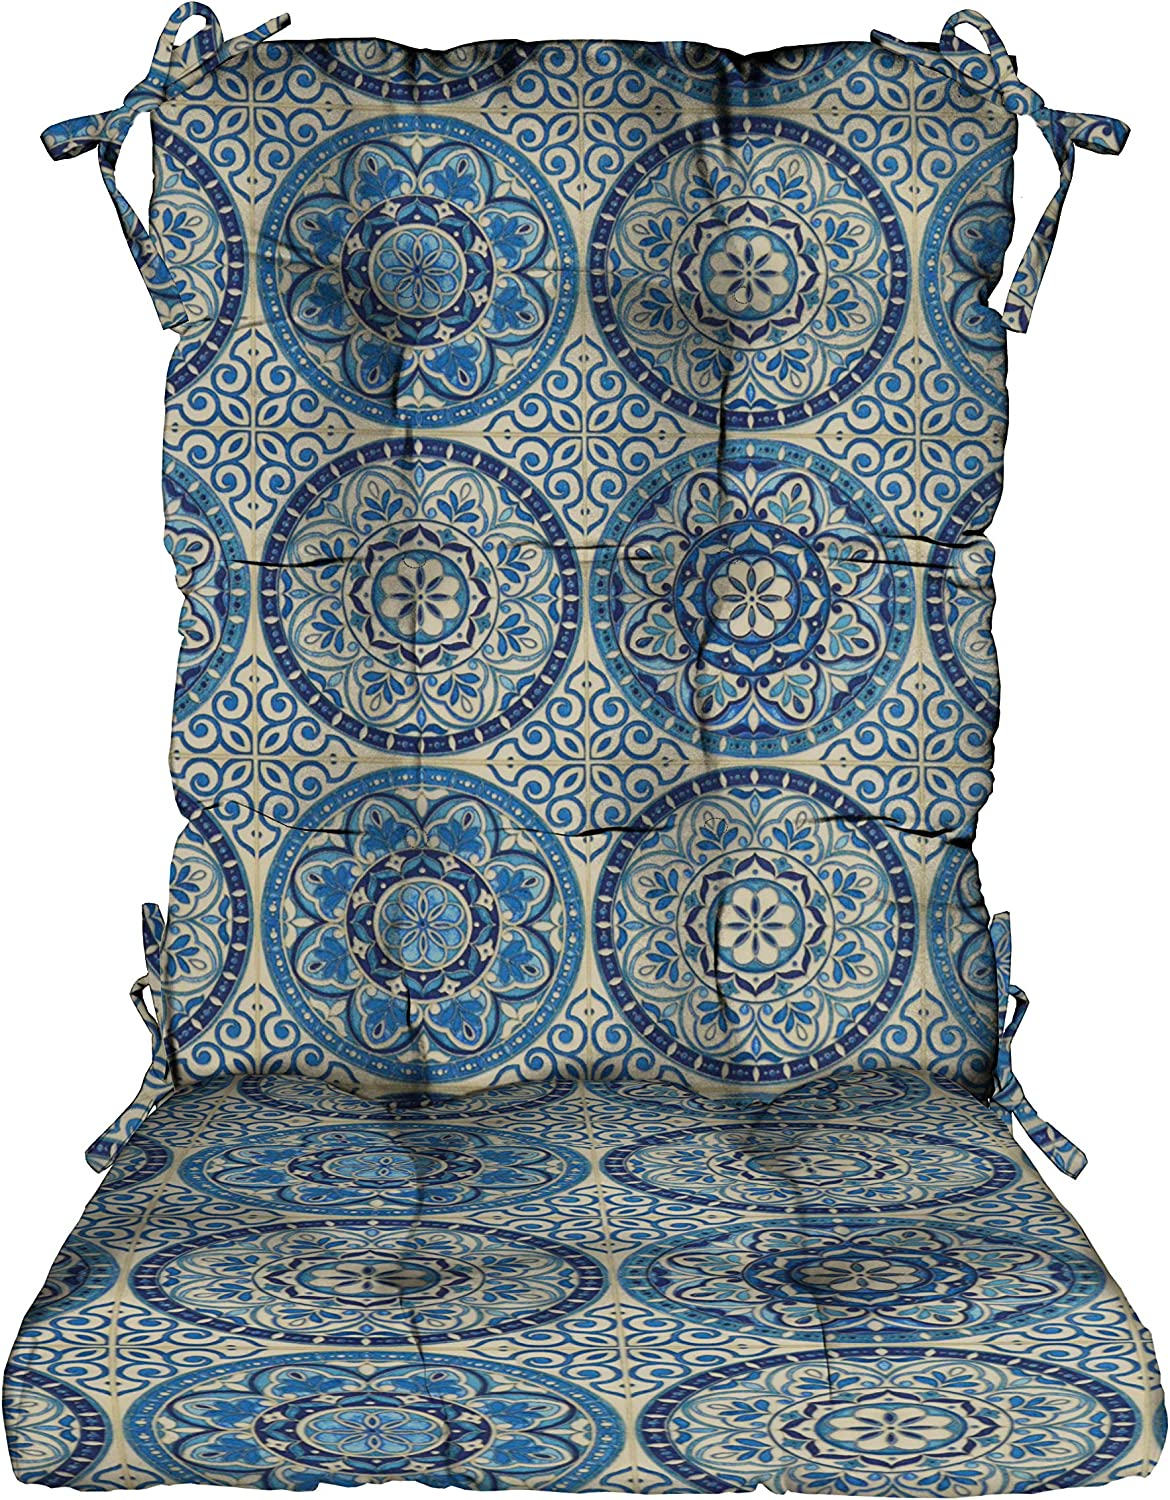 RSH Décor Max 44% OFF Indoor Outdoor Tufted Rocker Pad Chair Cush Rocking Max 53% OFF